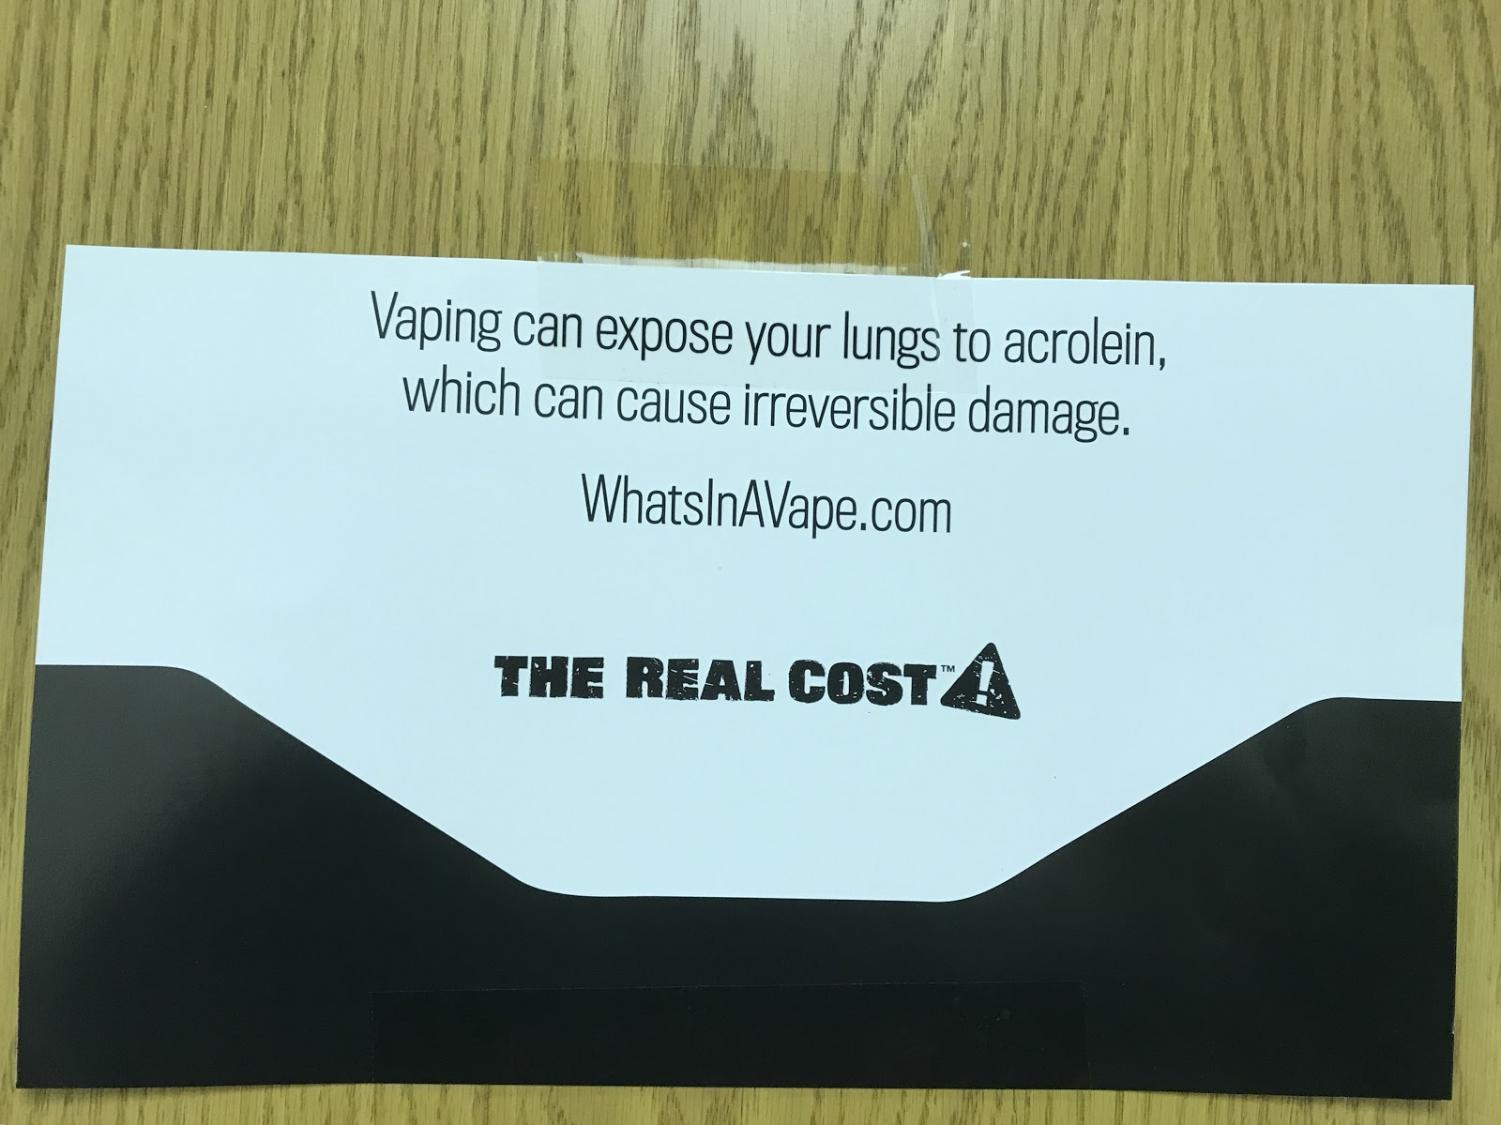 Montgomery County schools are plastering ads like these in school bathrooms to persuade students to put down the Juuls.